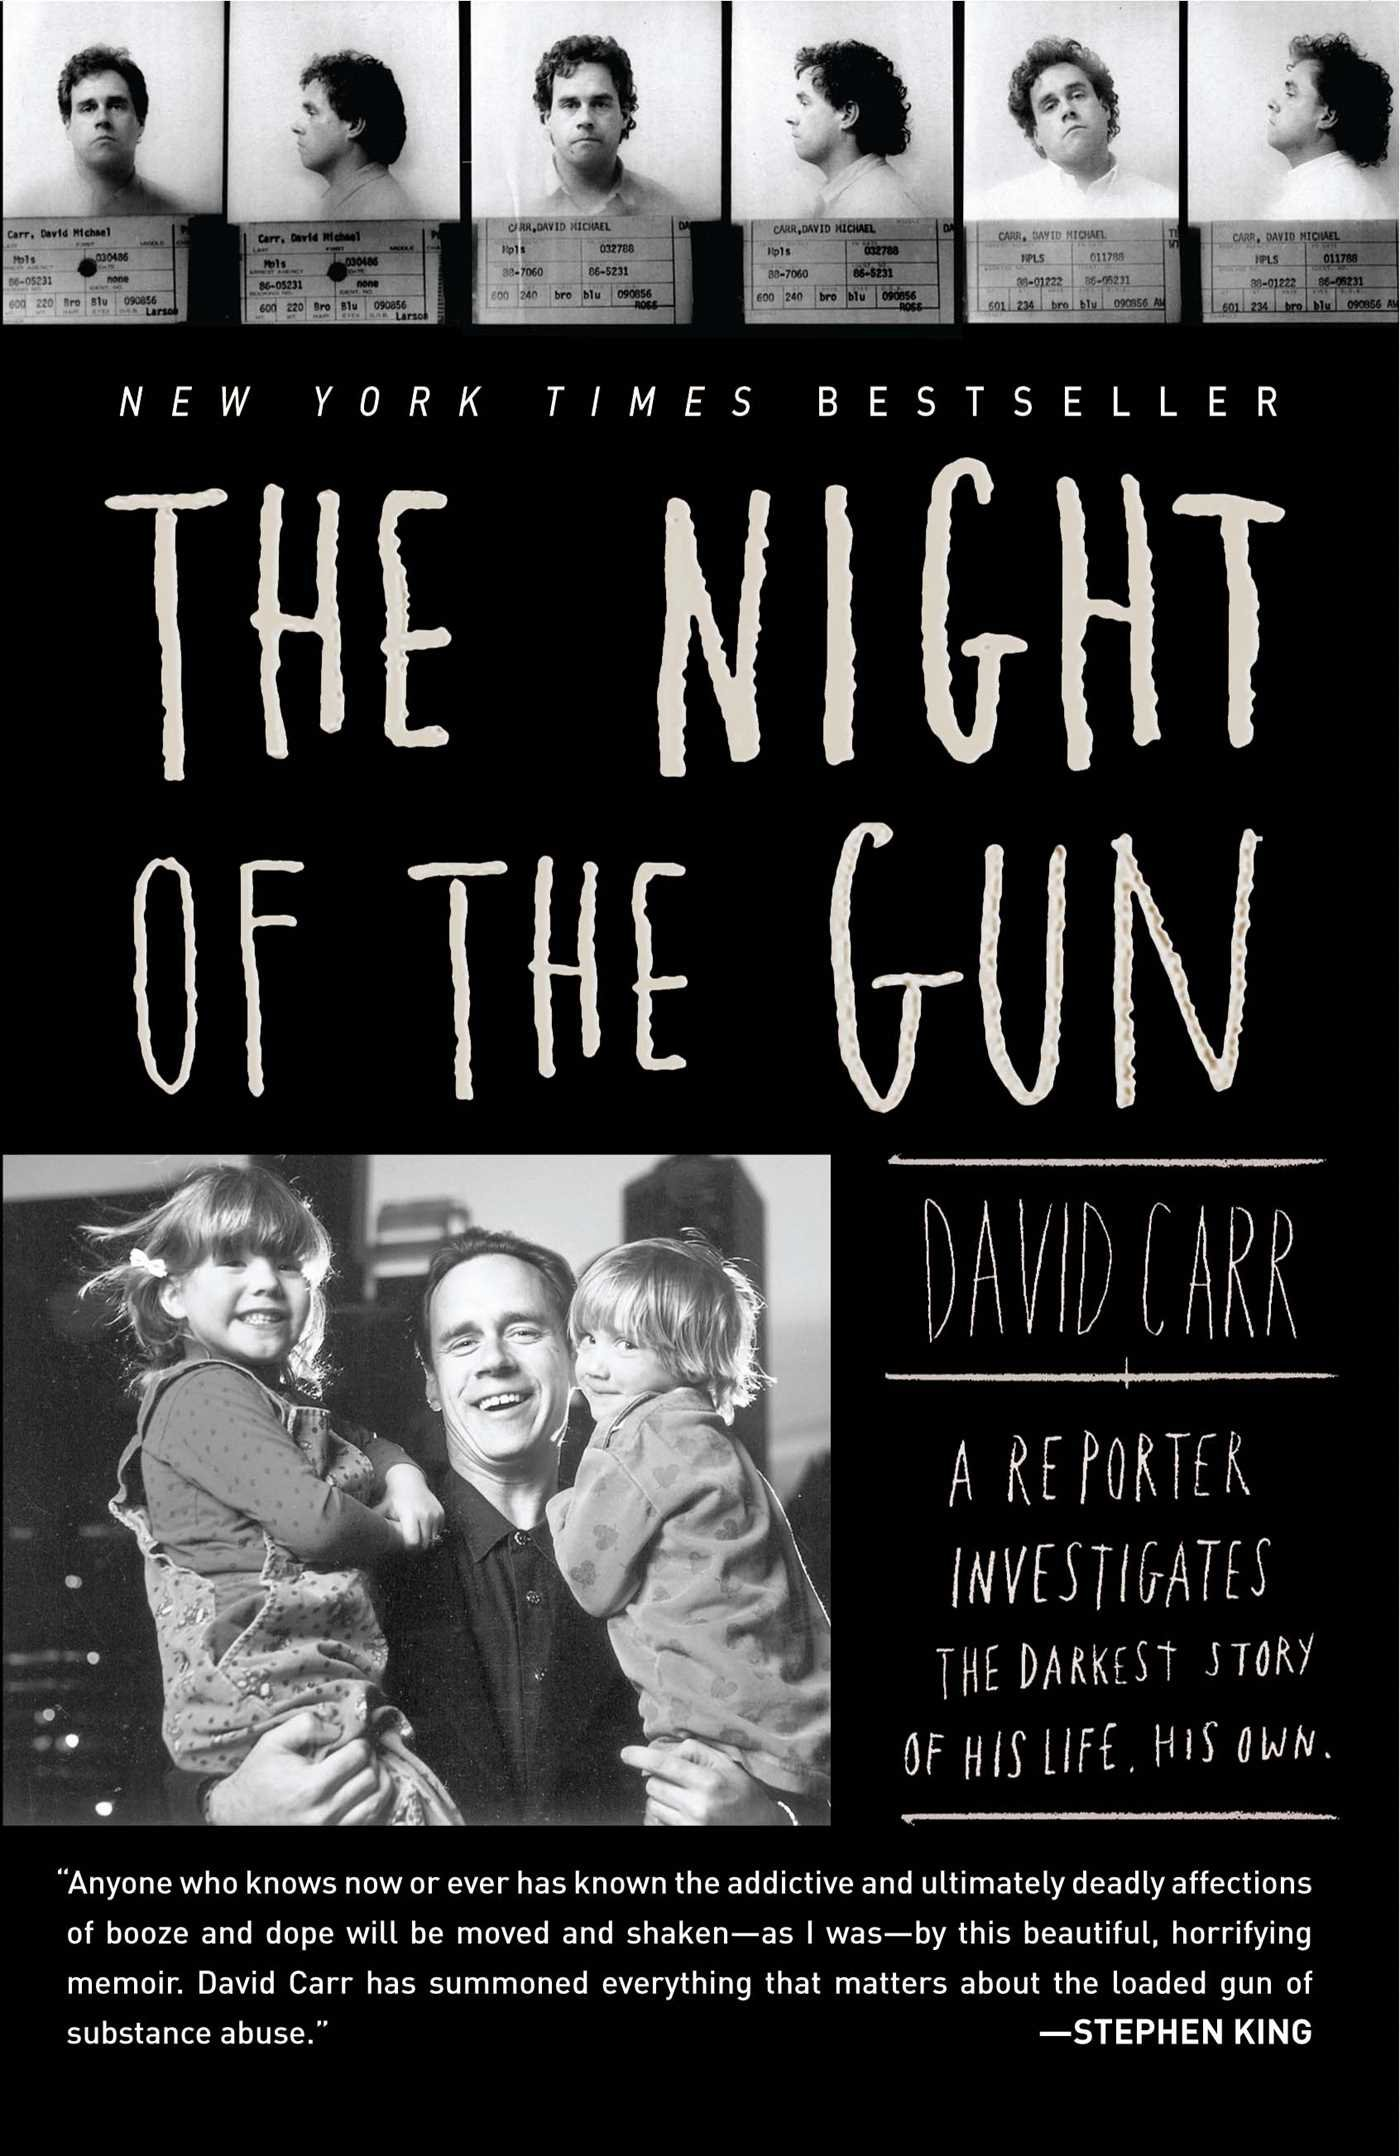 'The Night of the Gun' by David Carr